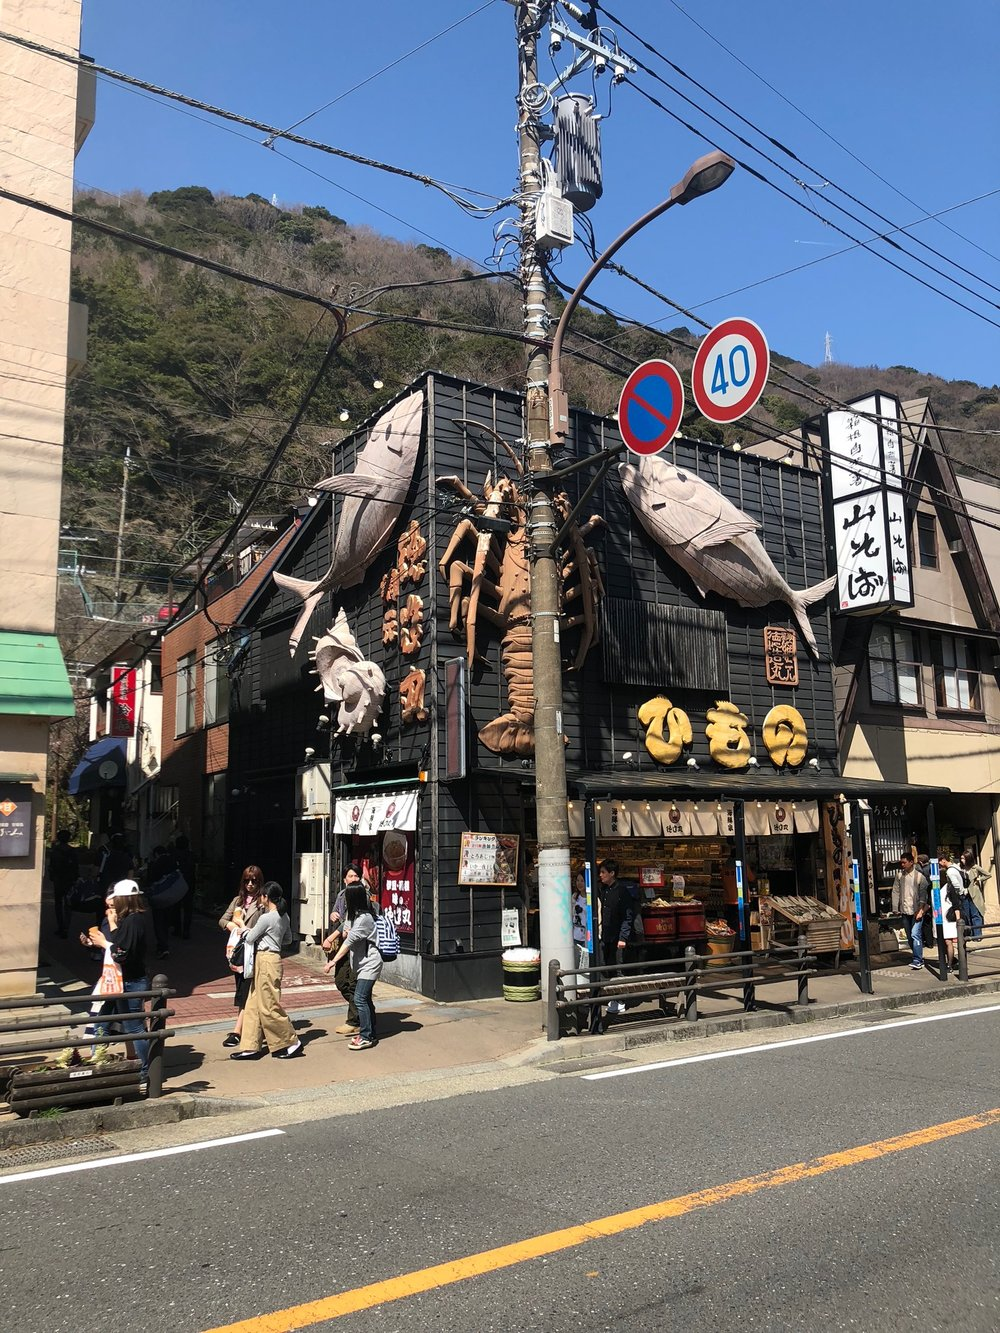 The first of many restaurants with gigantic crustaceans crawling up the walls, a running theme in Japanese cities. This is in the Yumoto area of Hakone, where the main train station is located.